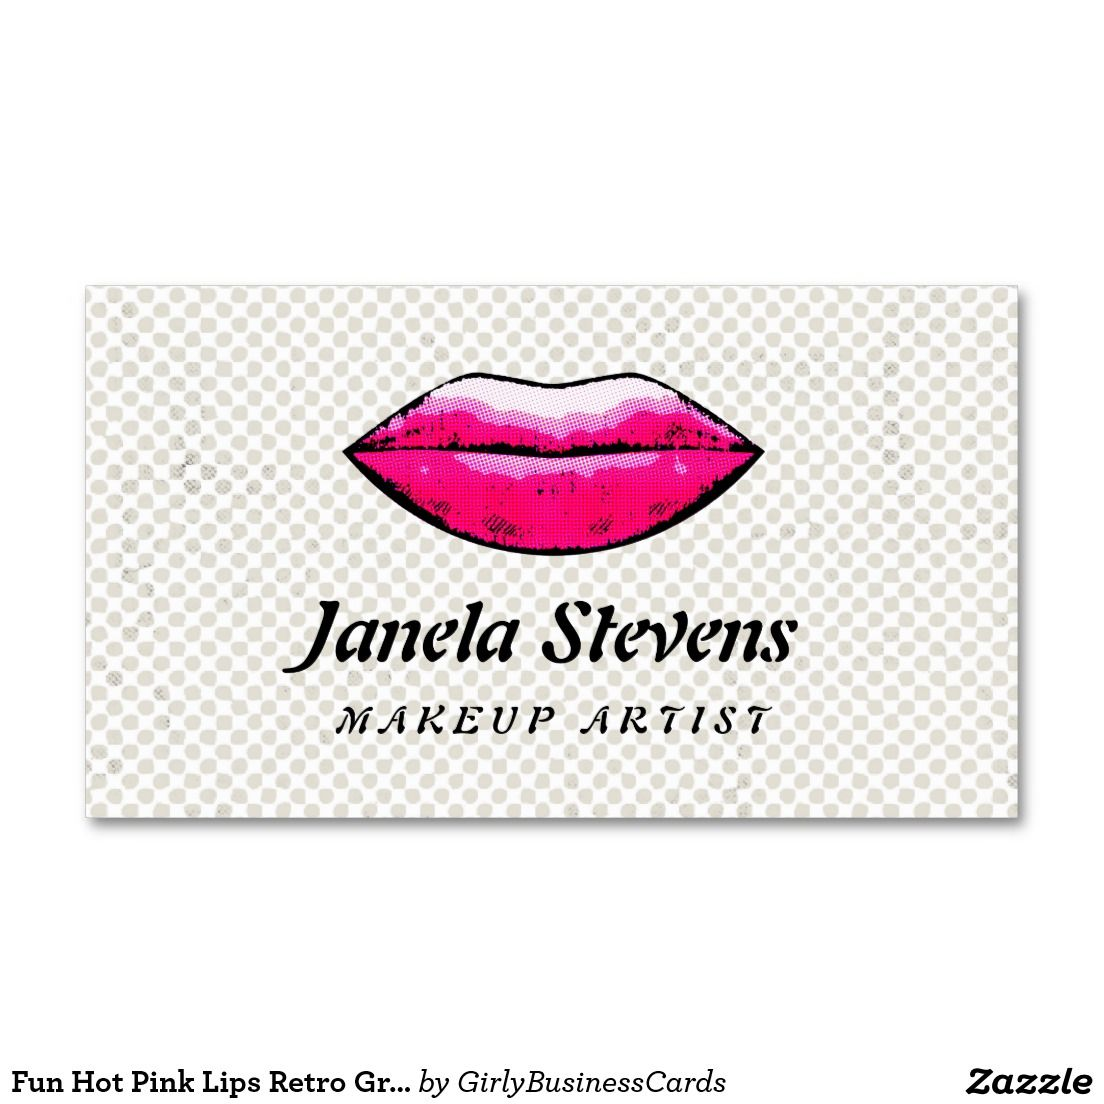 Cosmetology business cards for the quirky, fun loving makeup artist ...